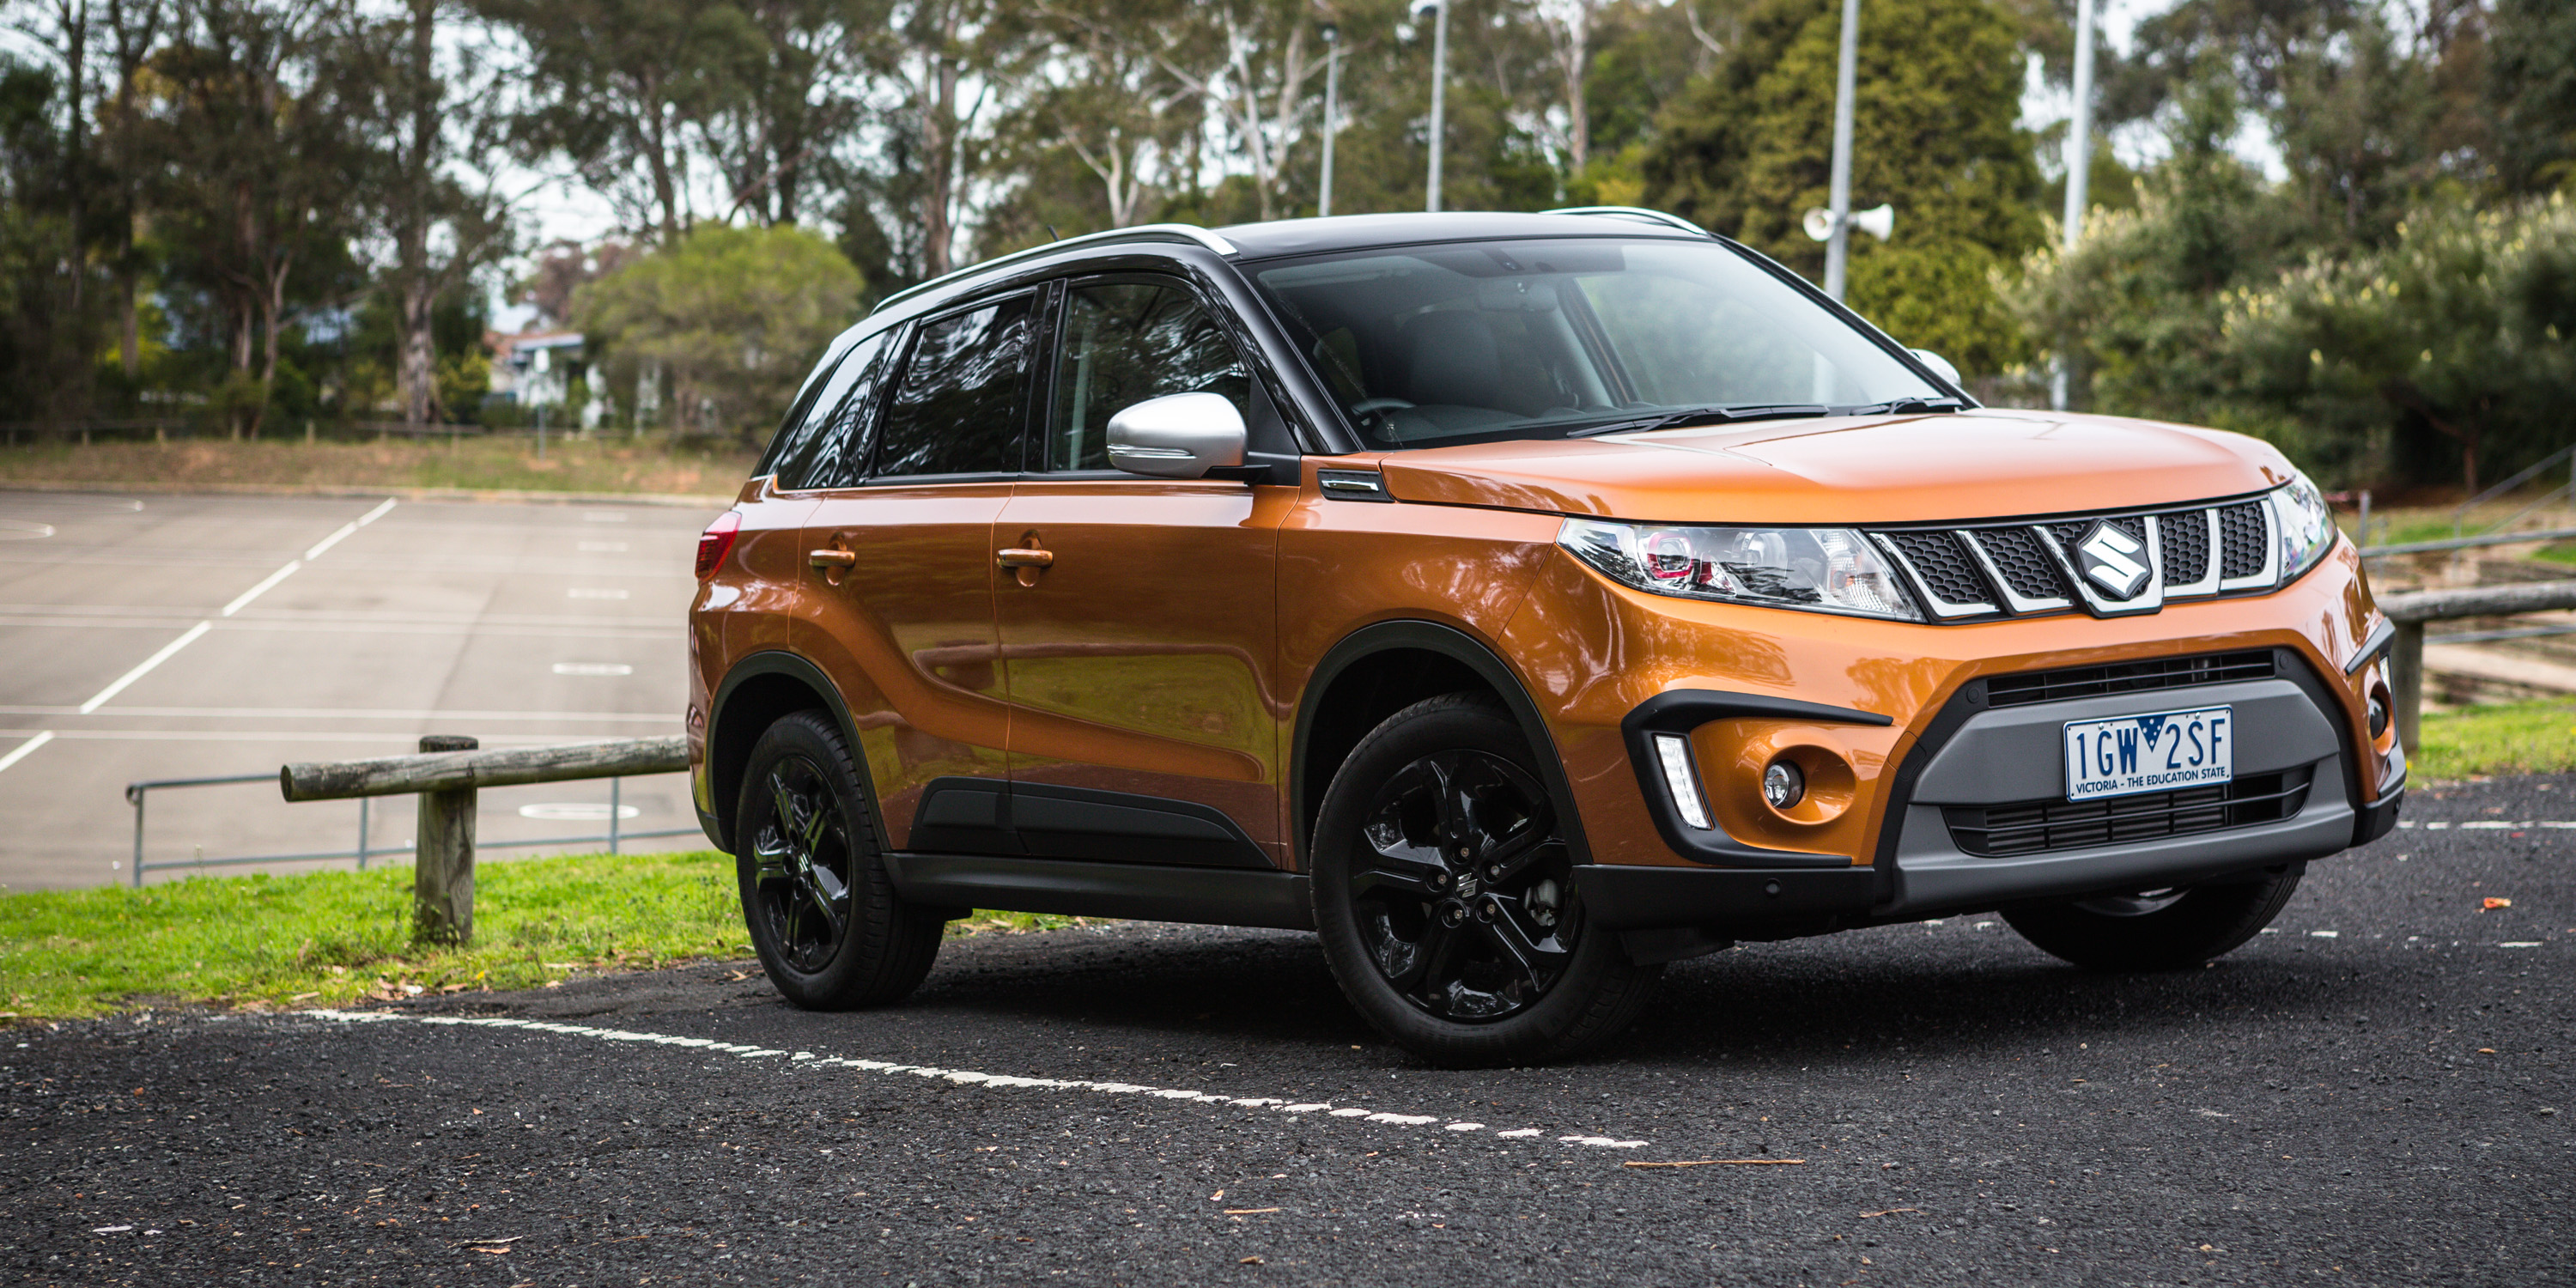 Cool 2016 Suzuki Vitara Range Review  Photos 1 Of 174